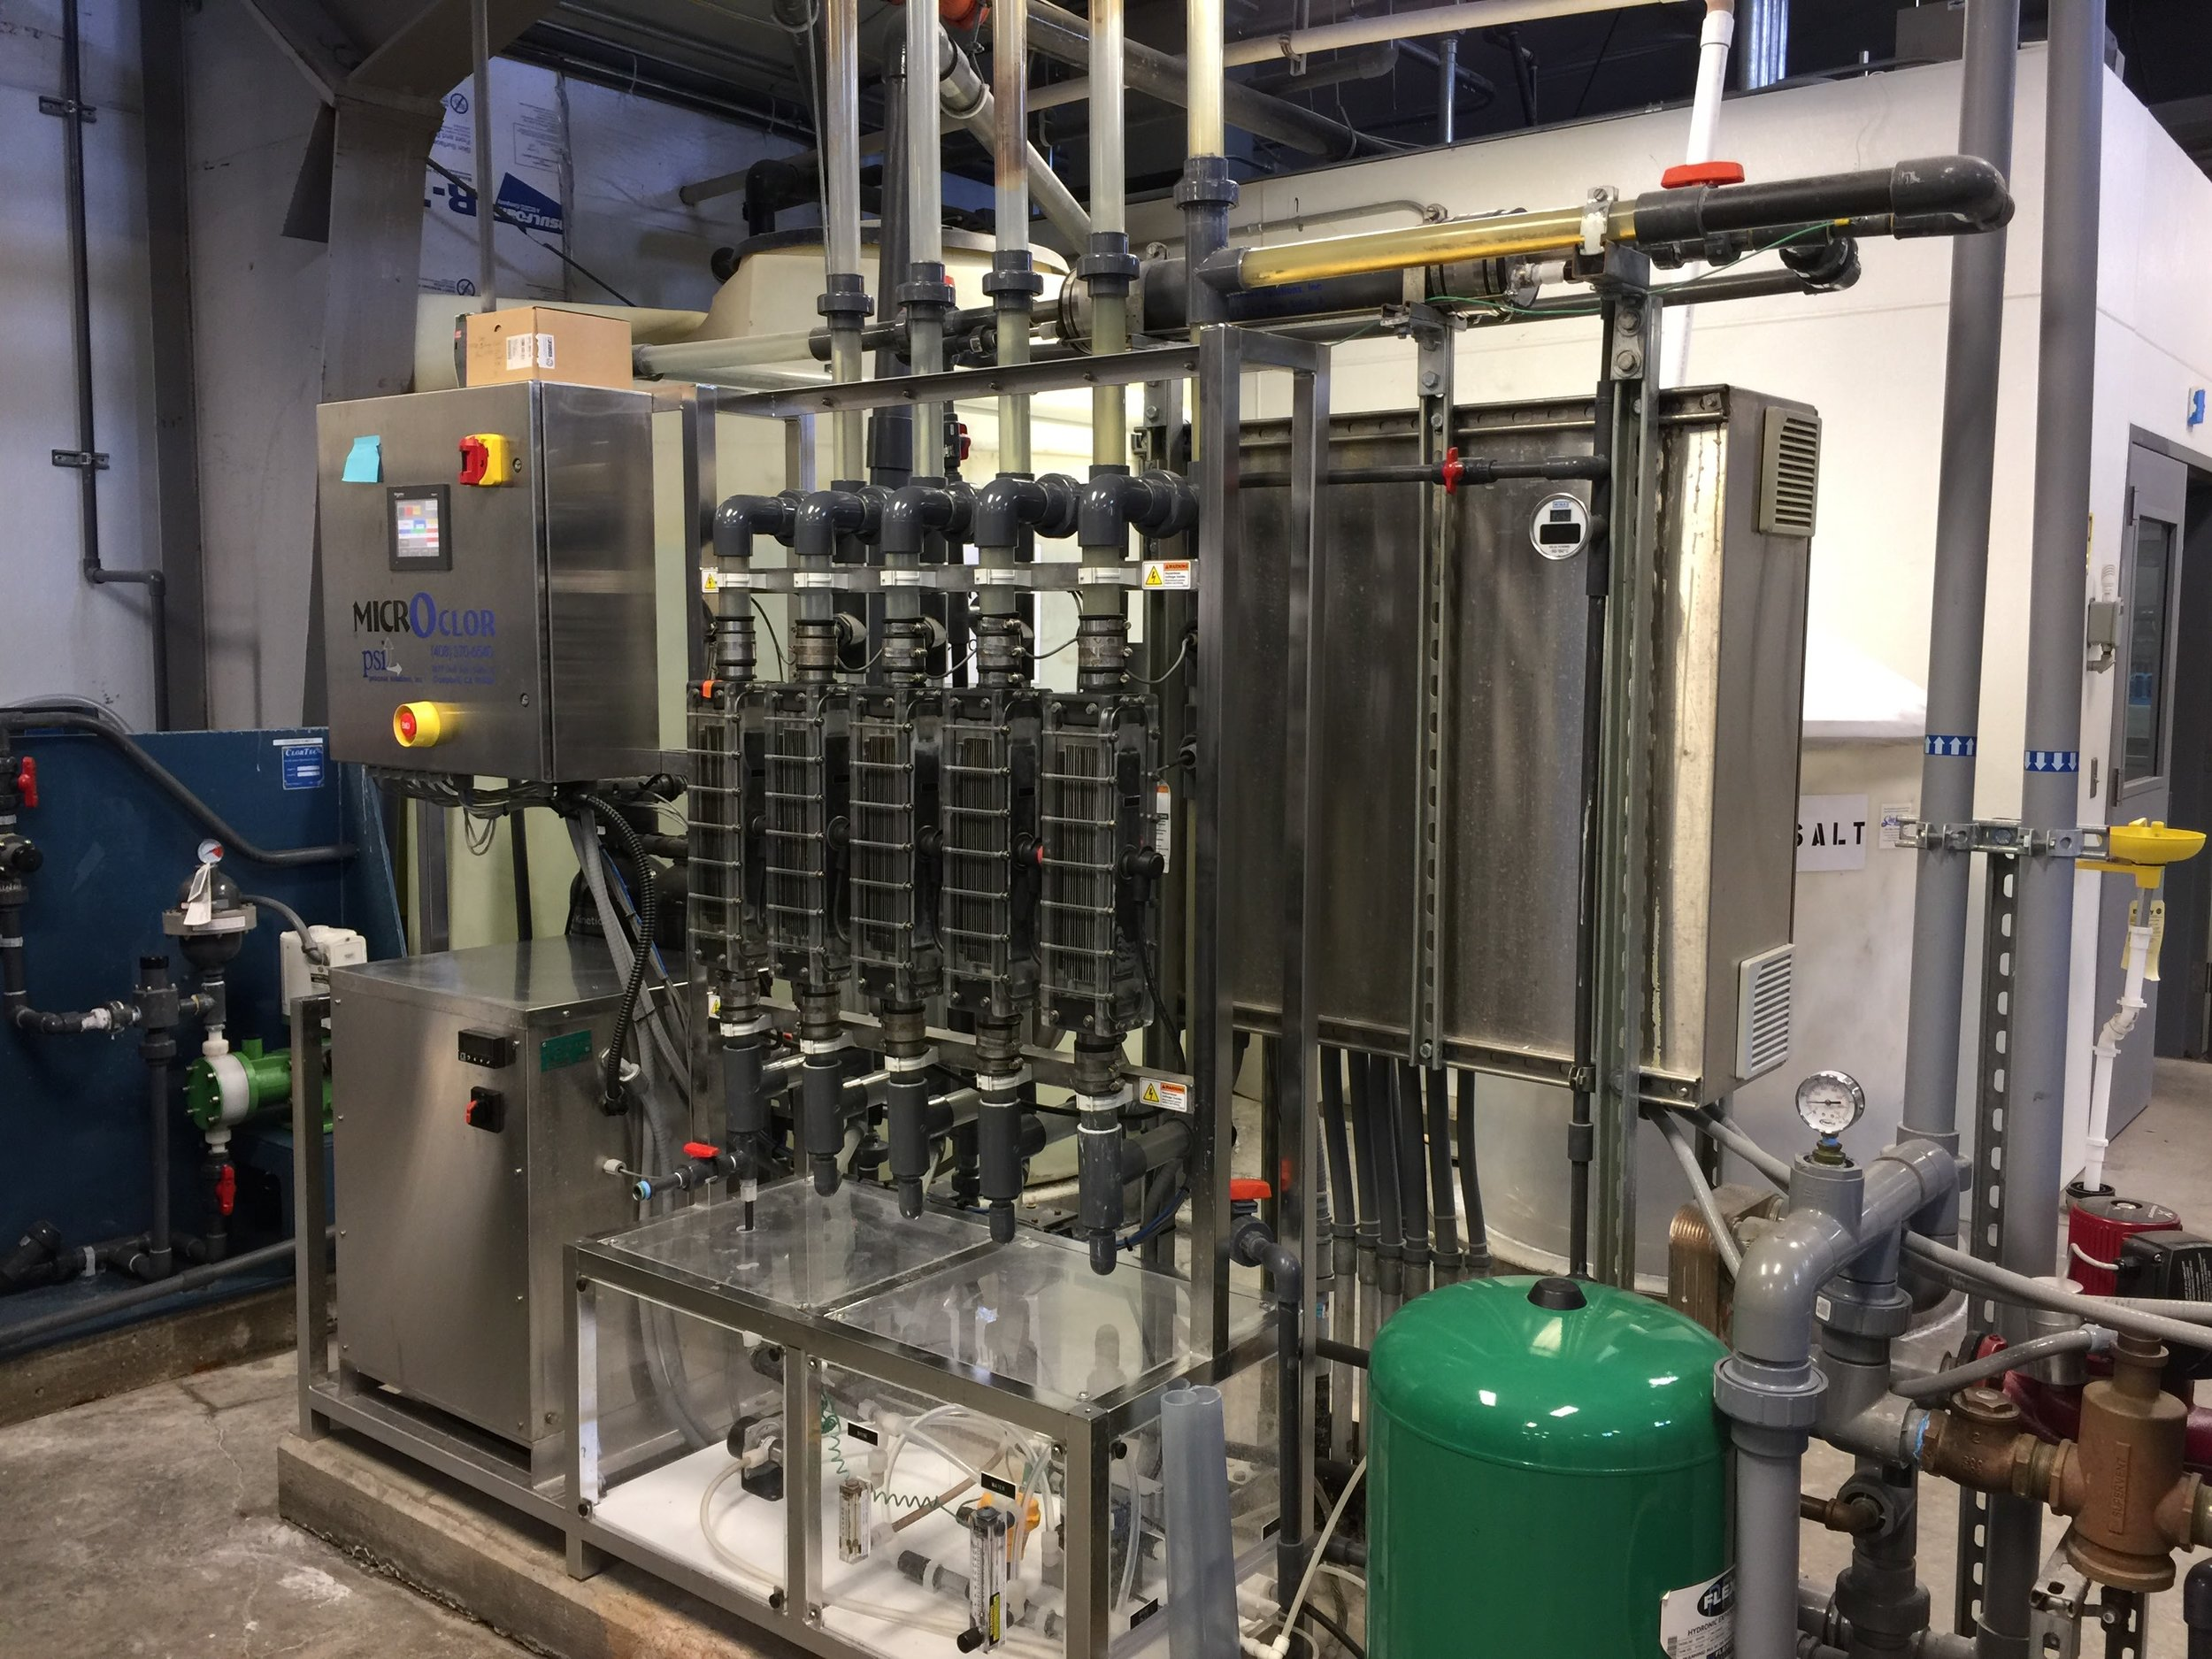 16. Chlorine Generator System - Generates chlorine safely from salt solution. Used for final disinfection of plant water before it moves into the finished water tank and distribution piping system.